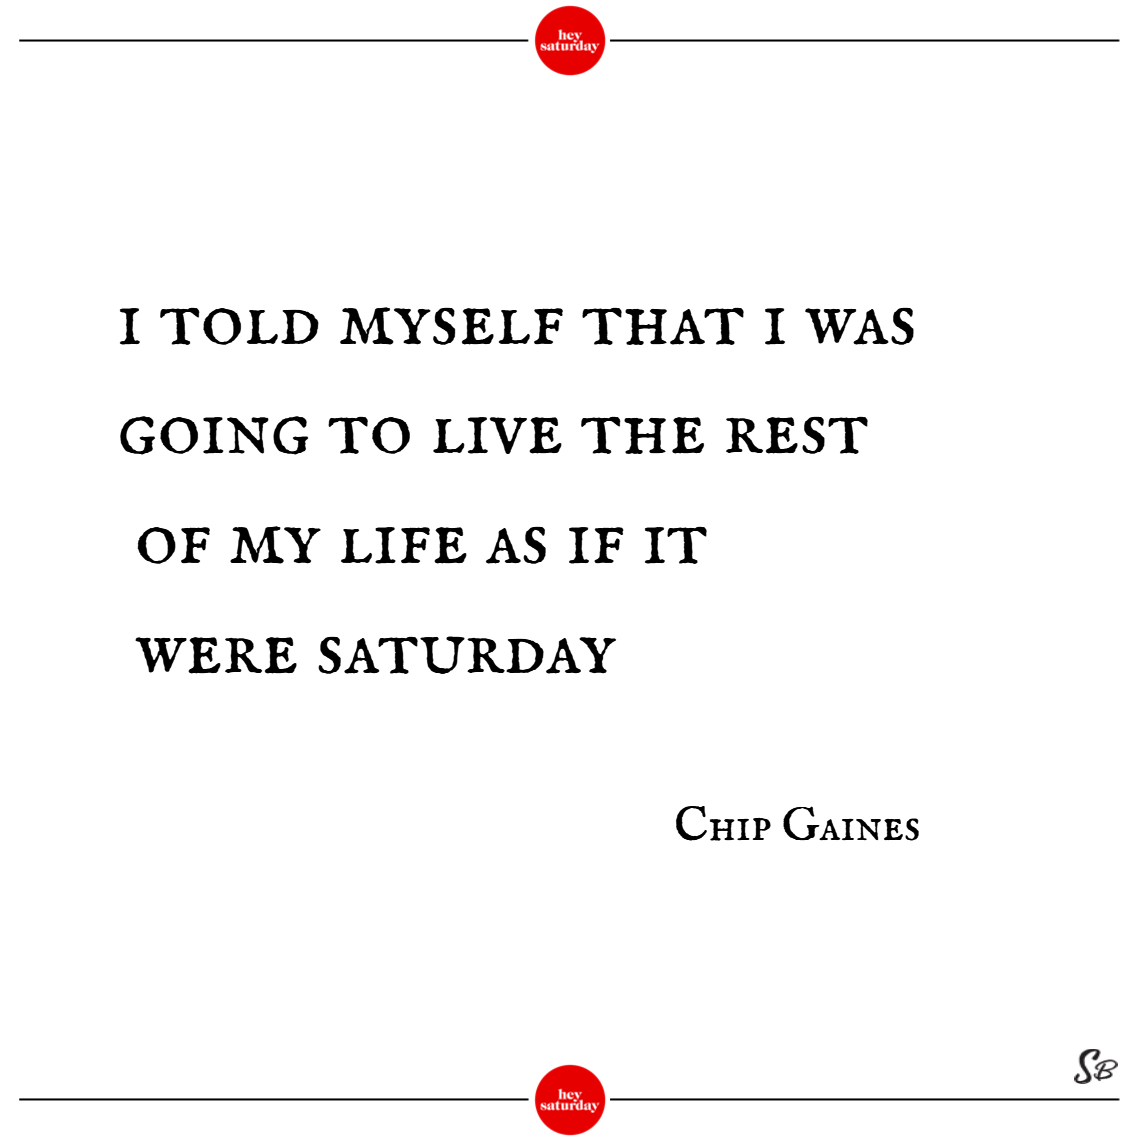 I told myself that i was going to live the rest of my life as if it were saturday. – chip gaines